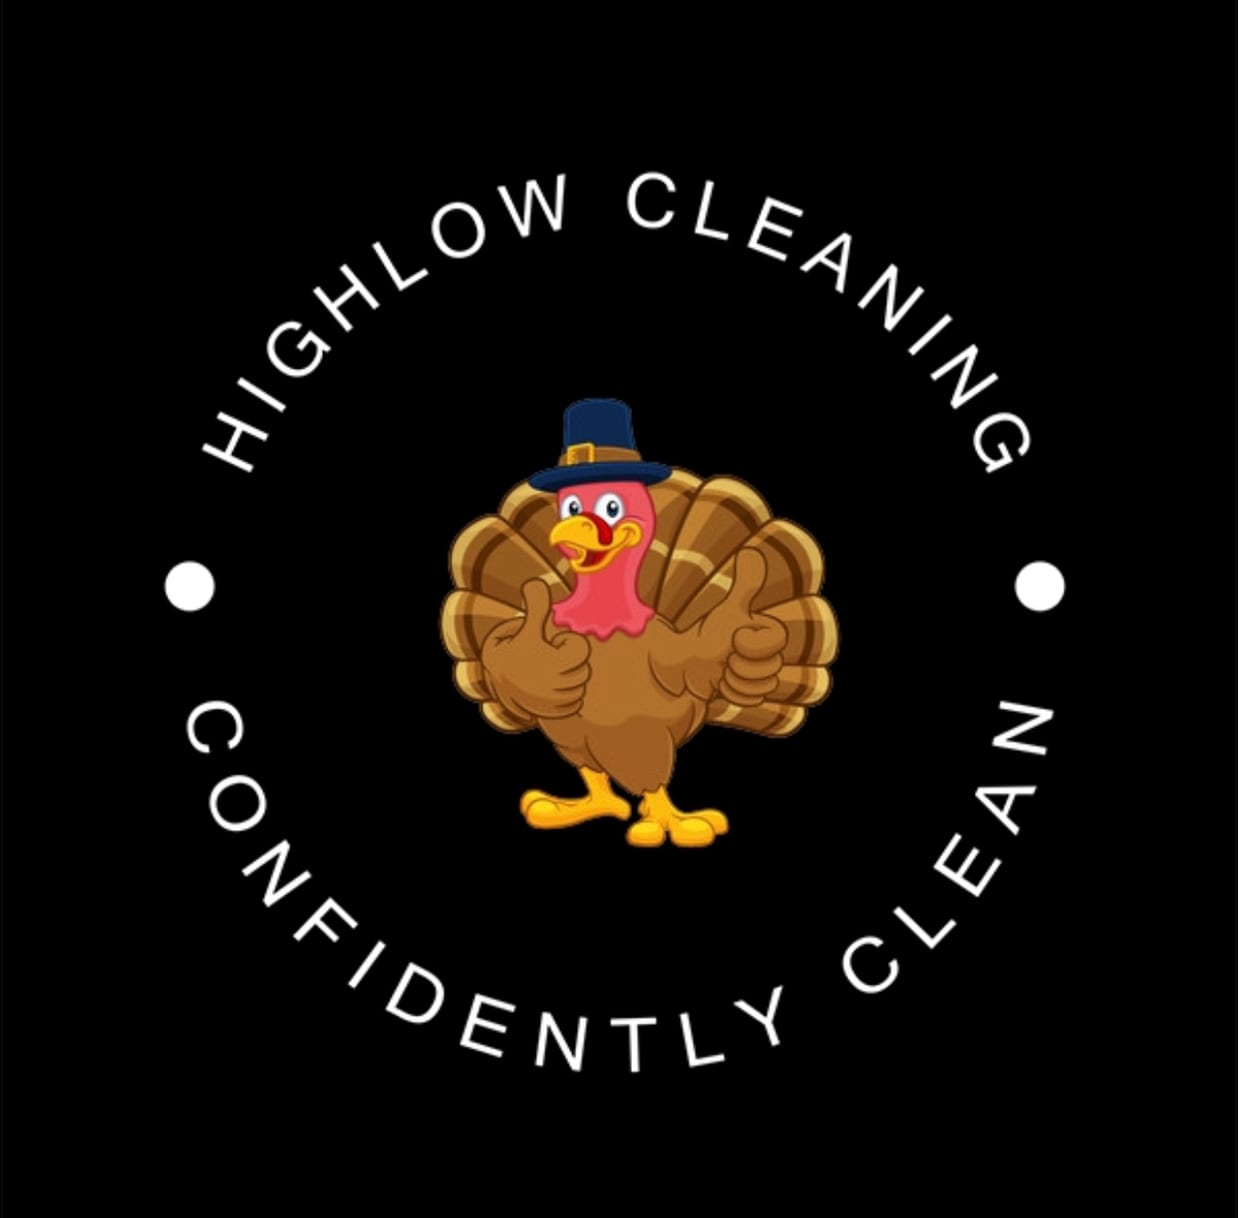 HighLow Cleaning